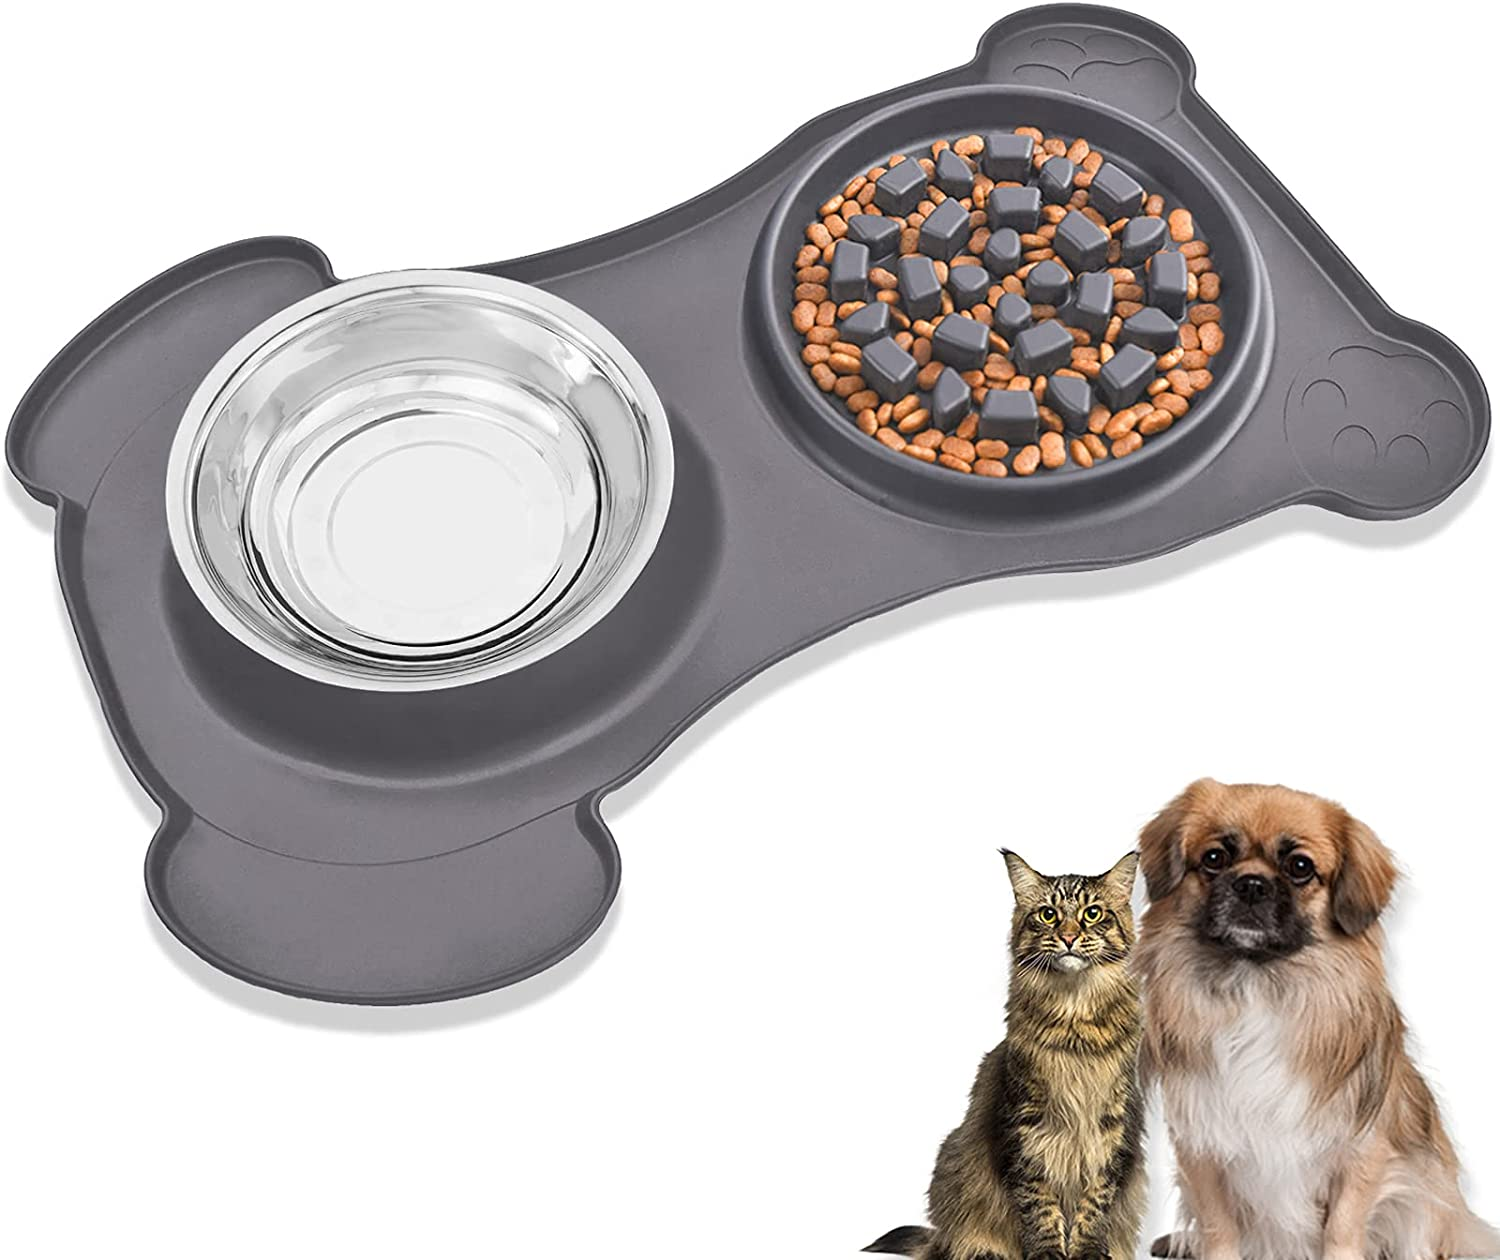 3 in 1 Slow Feeder Dog Bowl & Water Bowl Silicone Set - Stainless Steel Water & Food Dish Bowls with Non-Toxic, No Spill, Non Slip, Silicone Mat for Medium / Large Pet, Grey